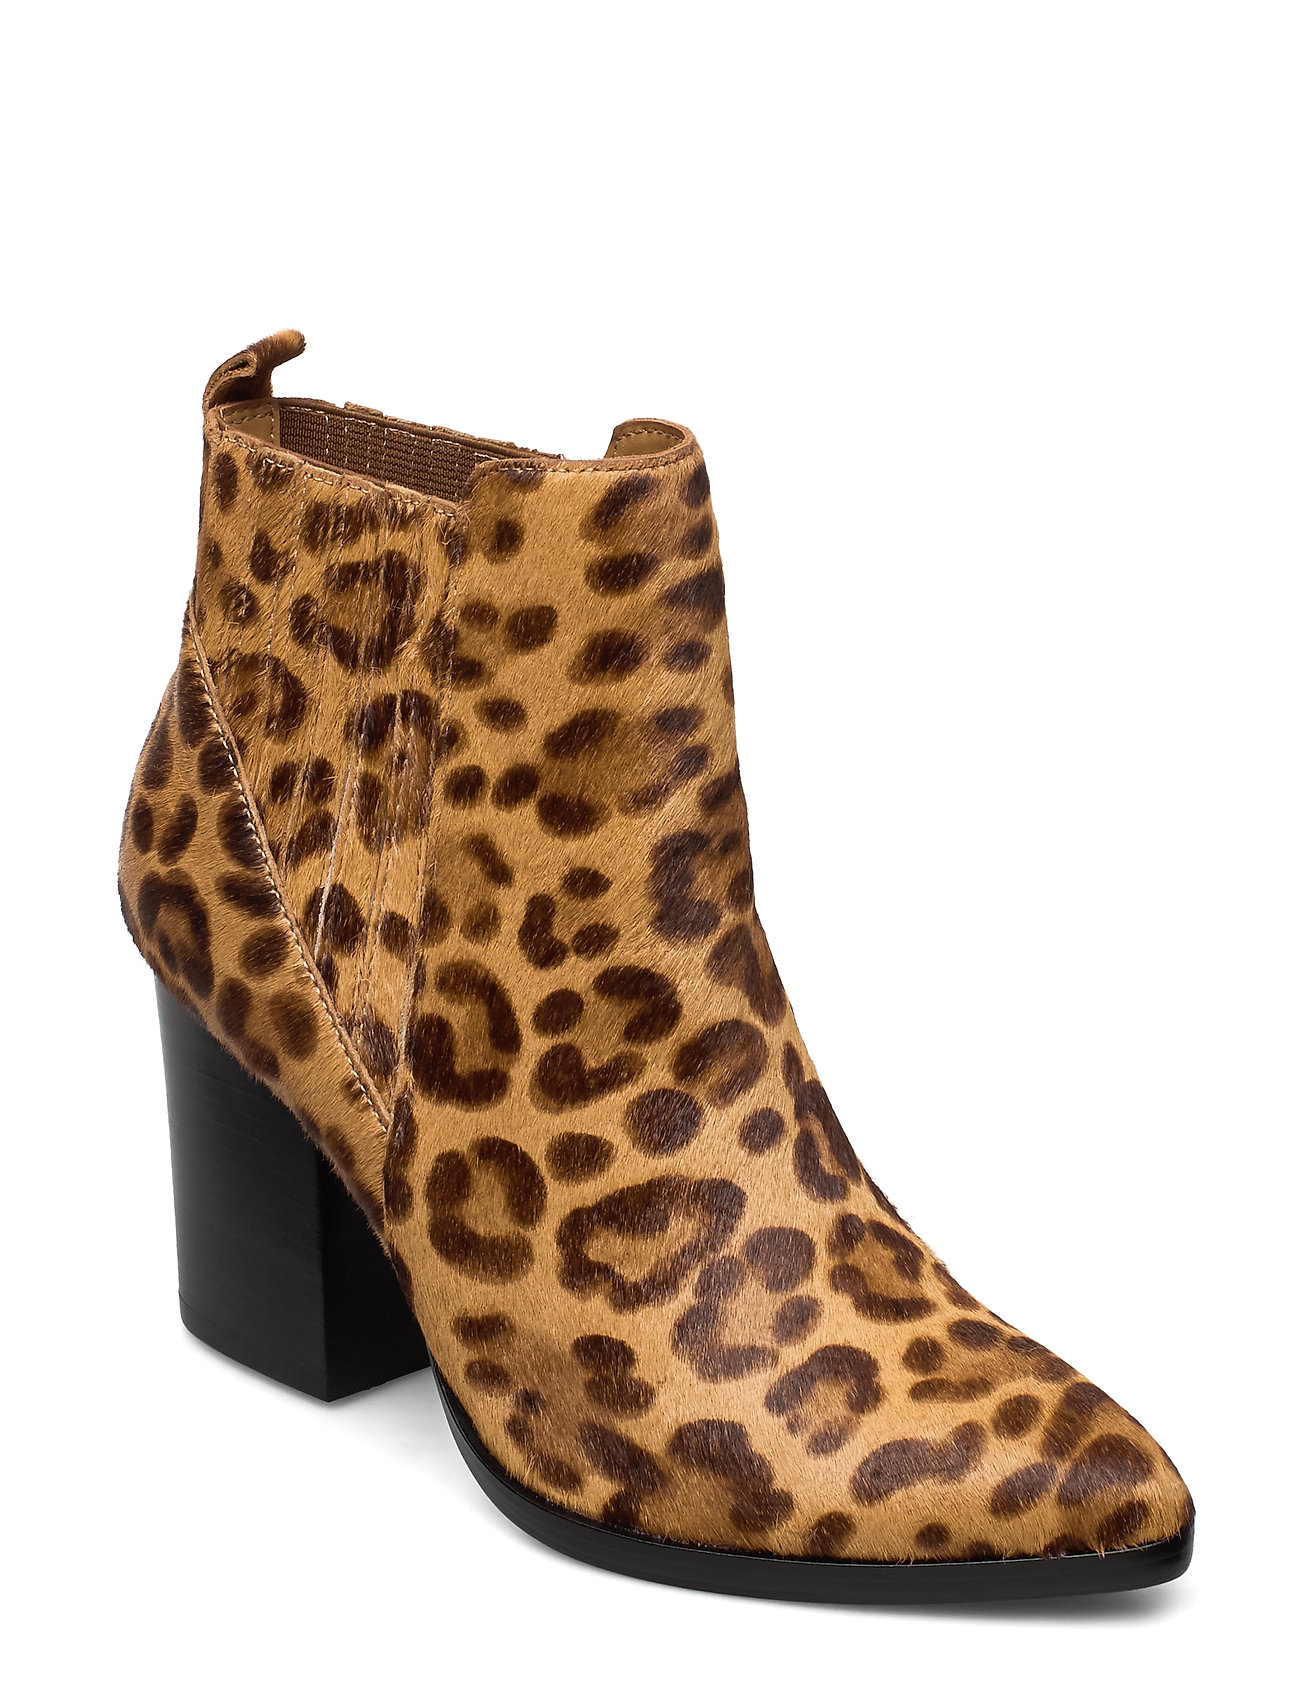 Image of Justina Bootie Shoes Boots Ankle Boots Ankle Boot - Heel Brun Steve Madden (3406241763)